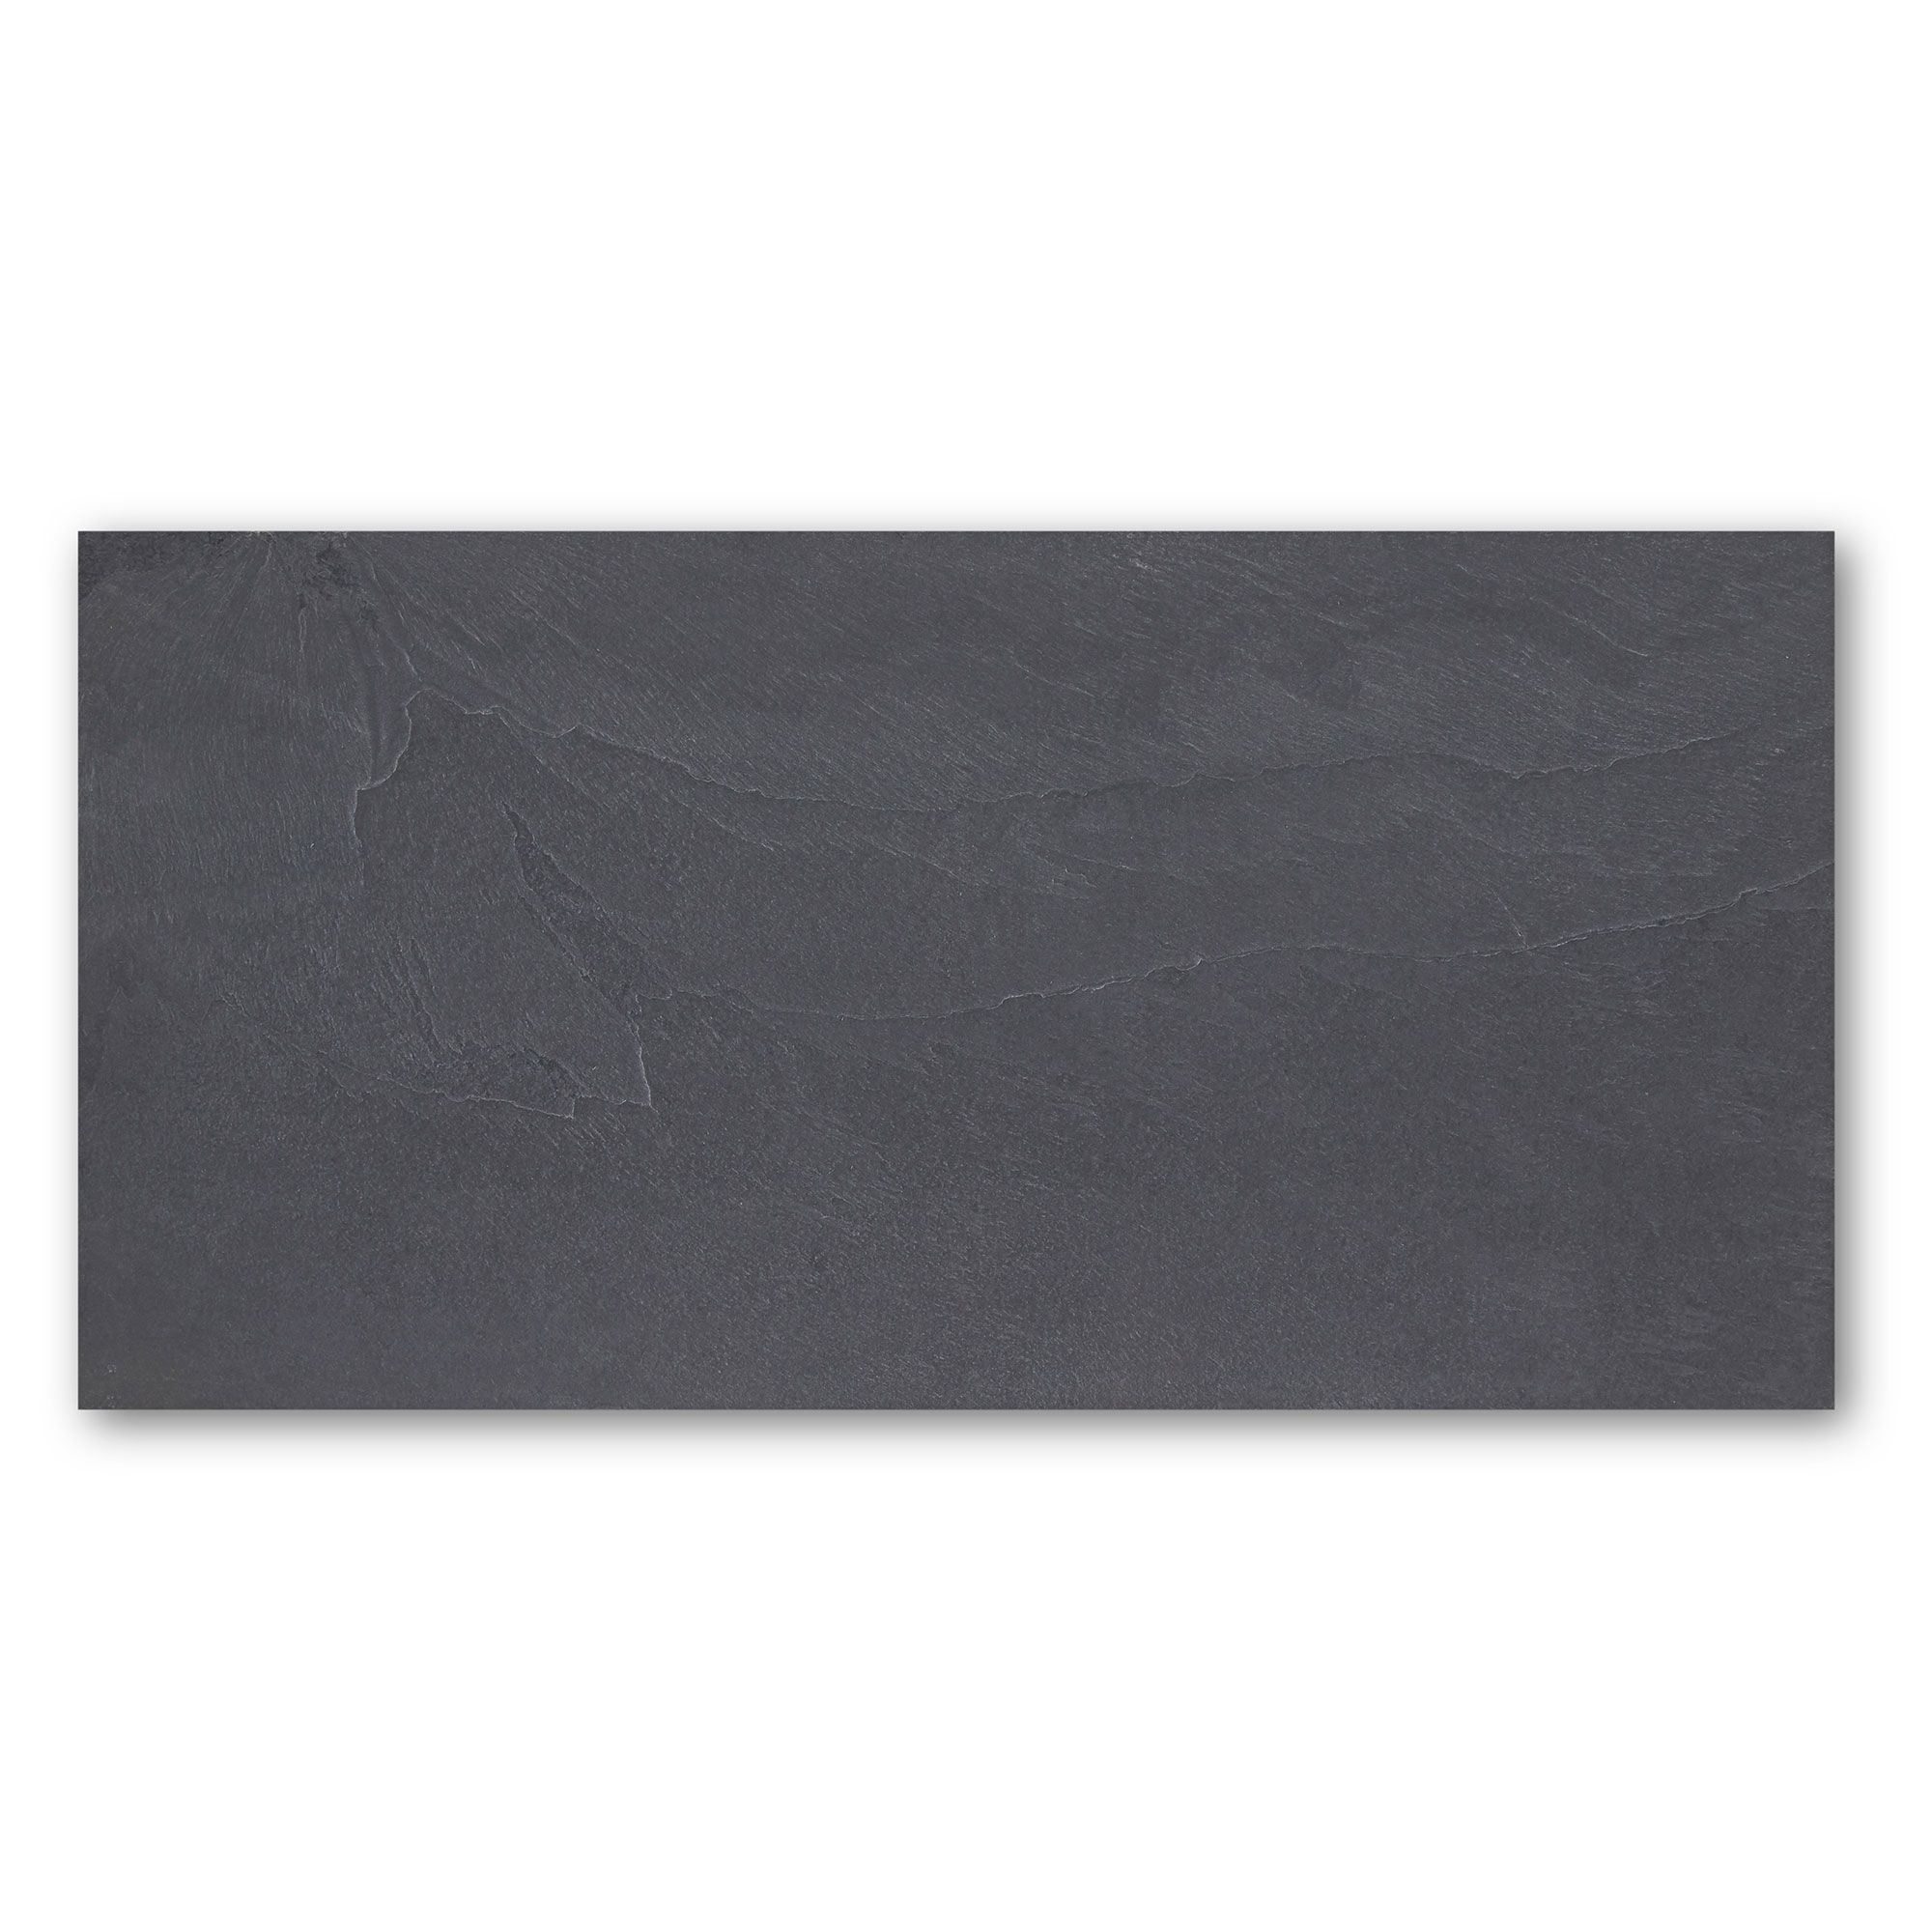 Urban Slate 40x20 Black/Grey